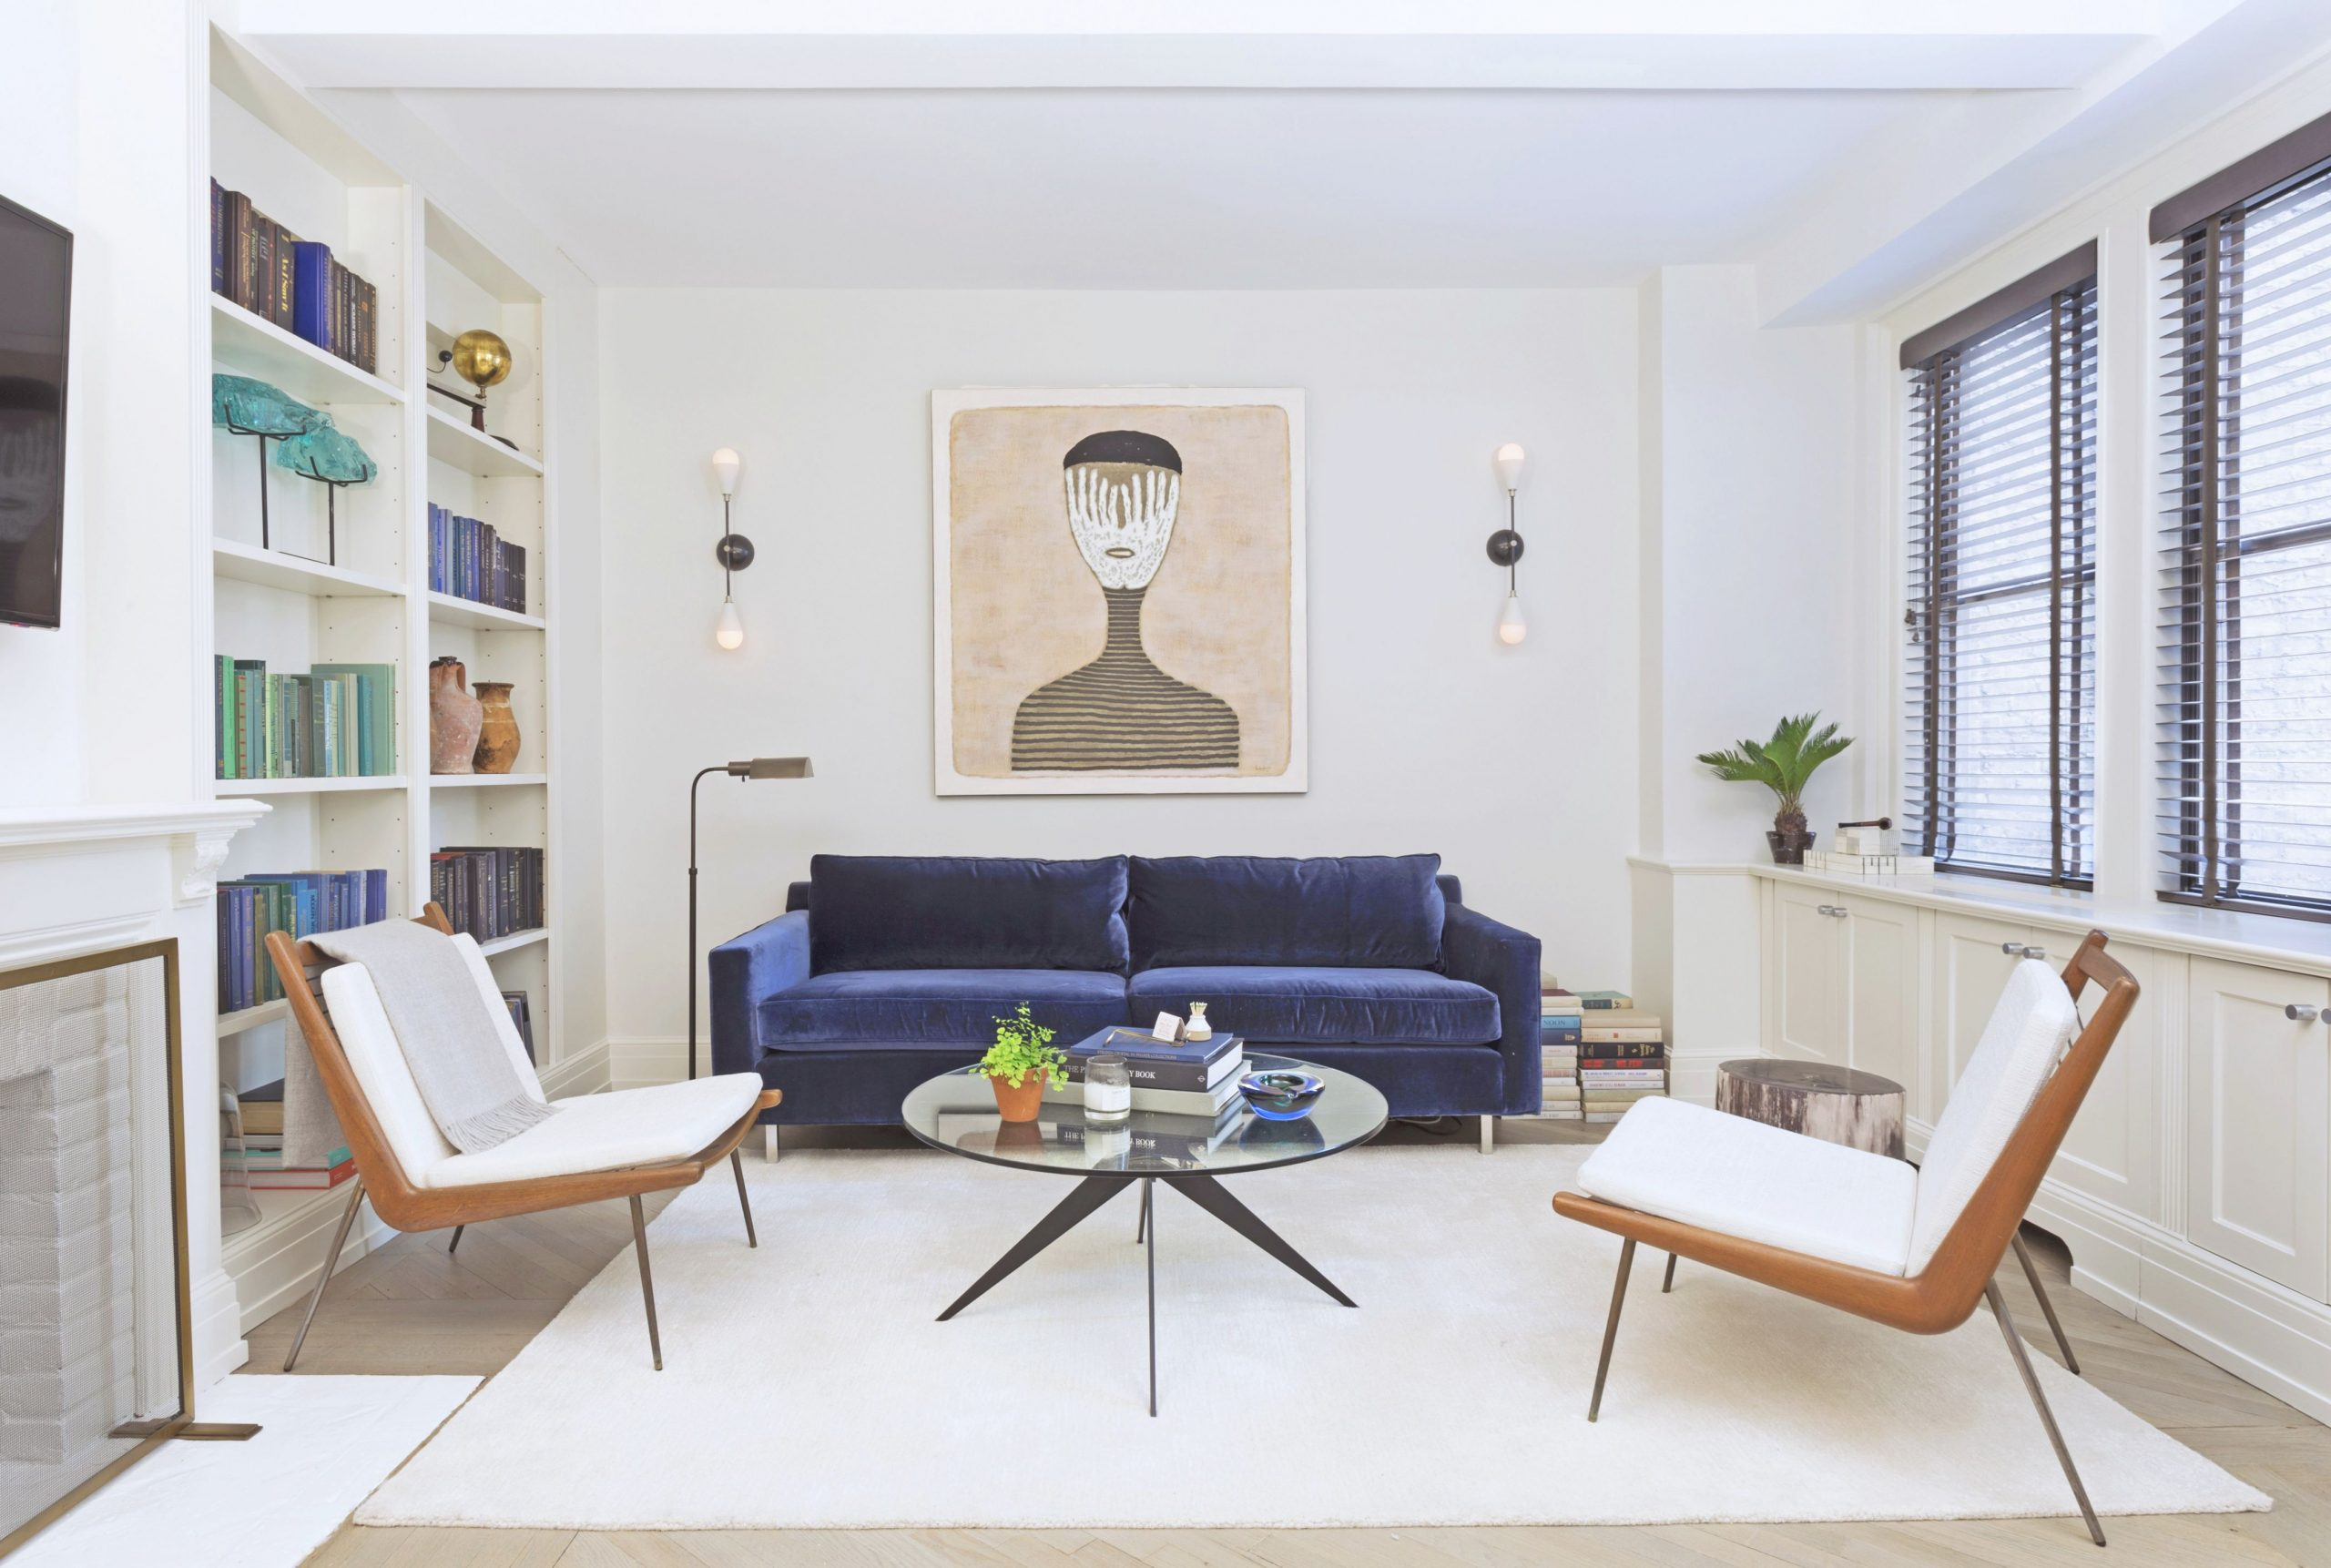 20 Wall Decor Ideas To Refresh Your Space   Architectural Digest with Home Decorating Ideas Small Living Room